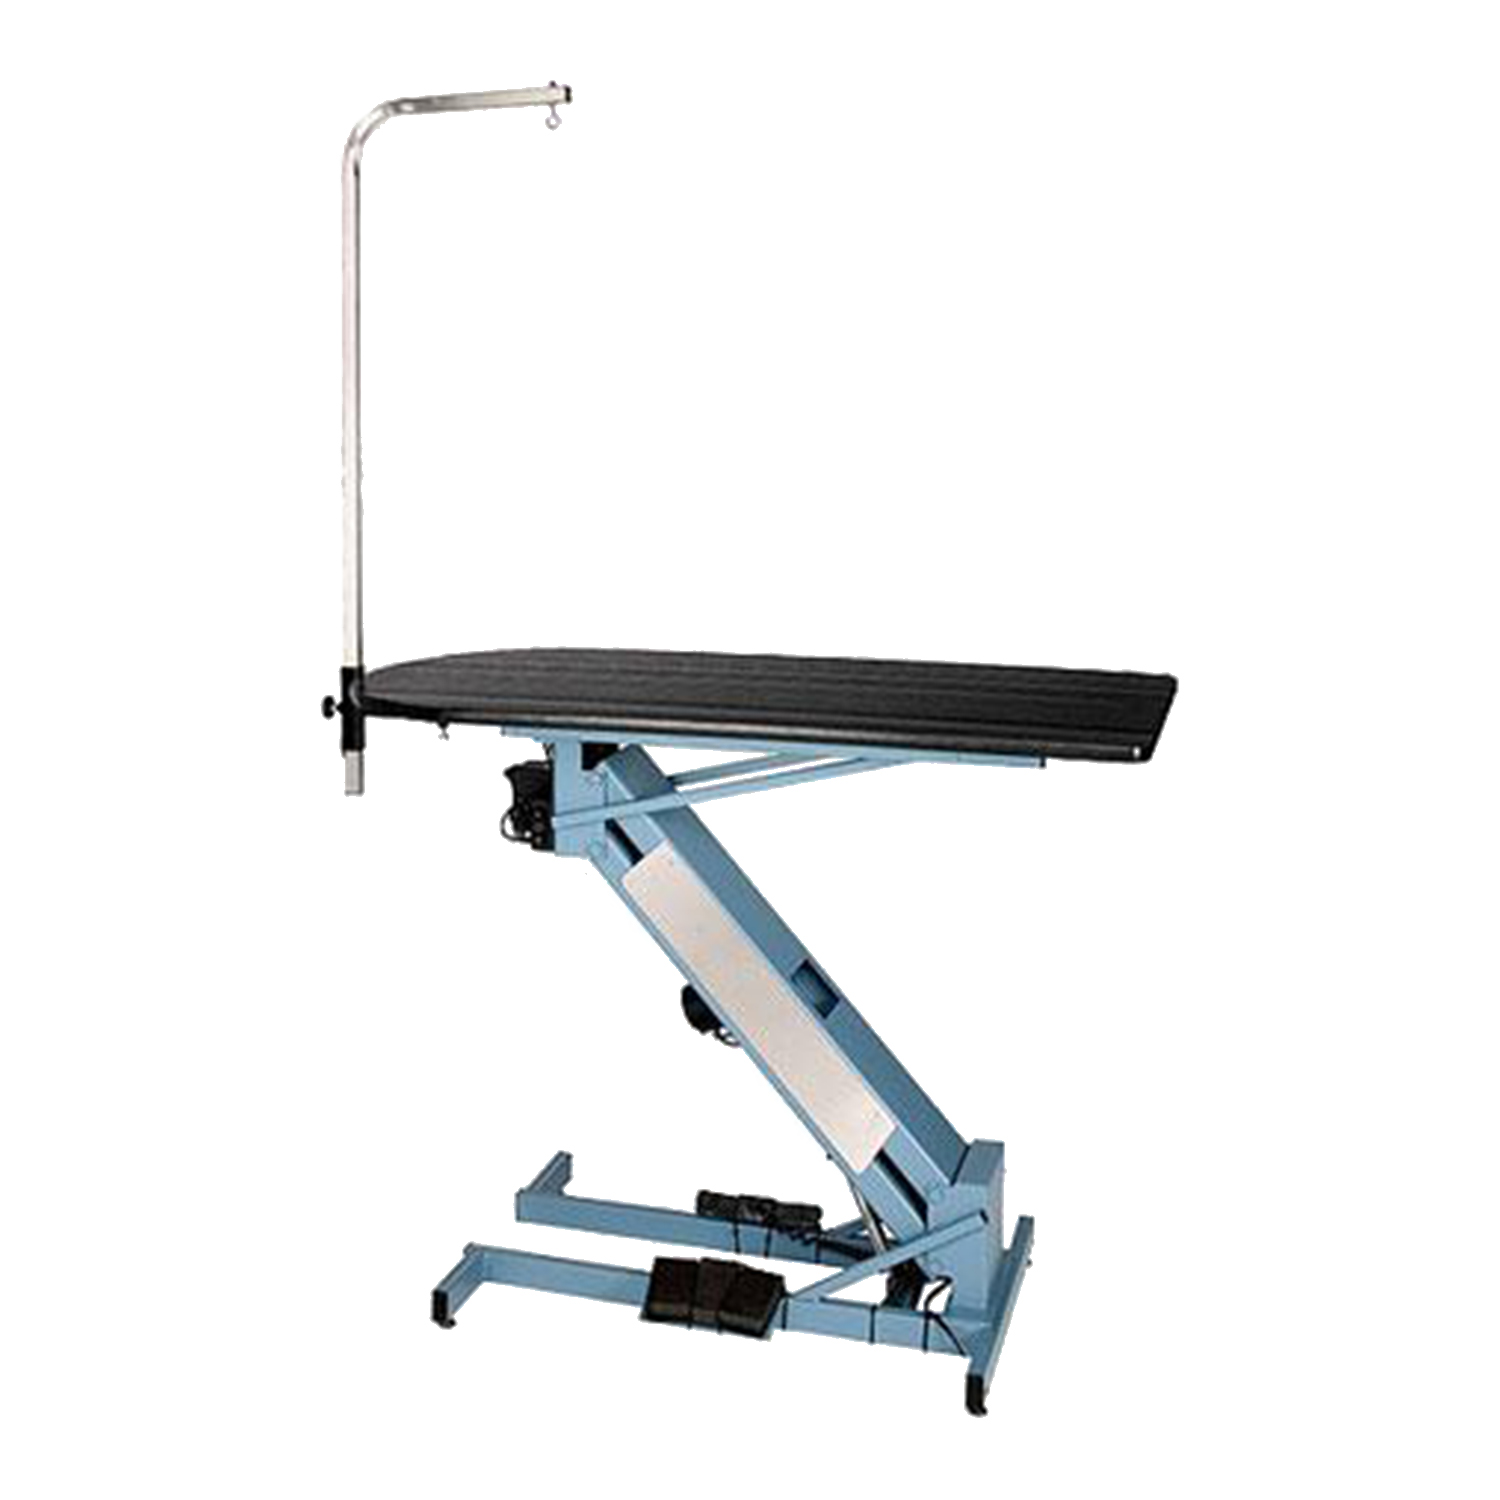 Avante GVT 1600: Master Lift Electric Fixed Top Grooming Table w/ Rotating Post